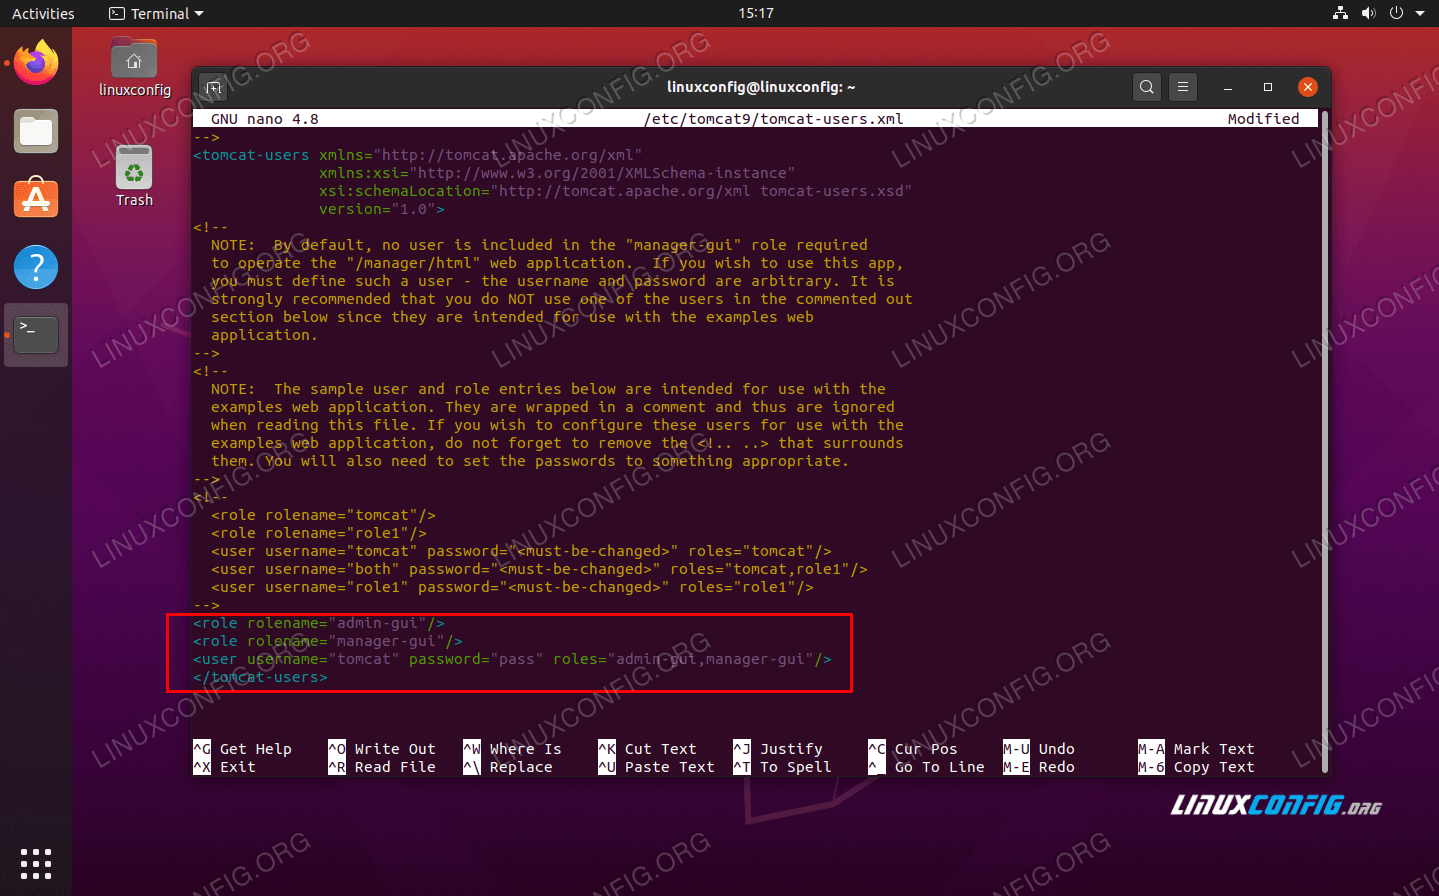 Editing the tomcat-users XML file with user credentials to access the admin GUI